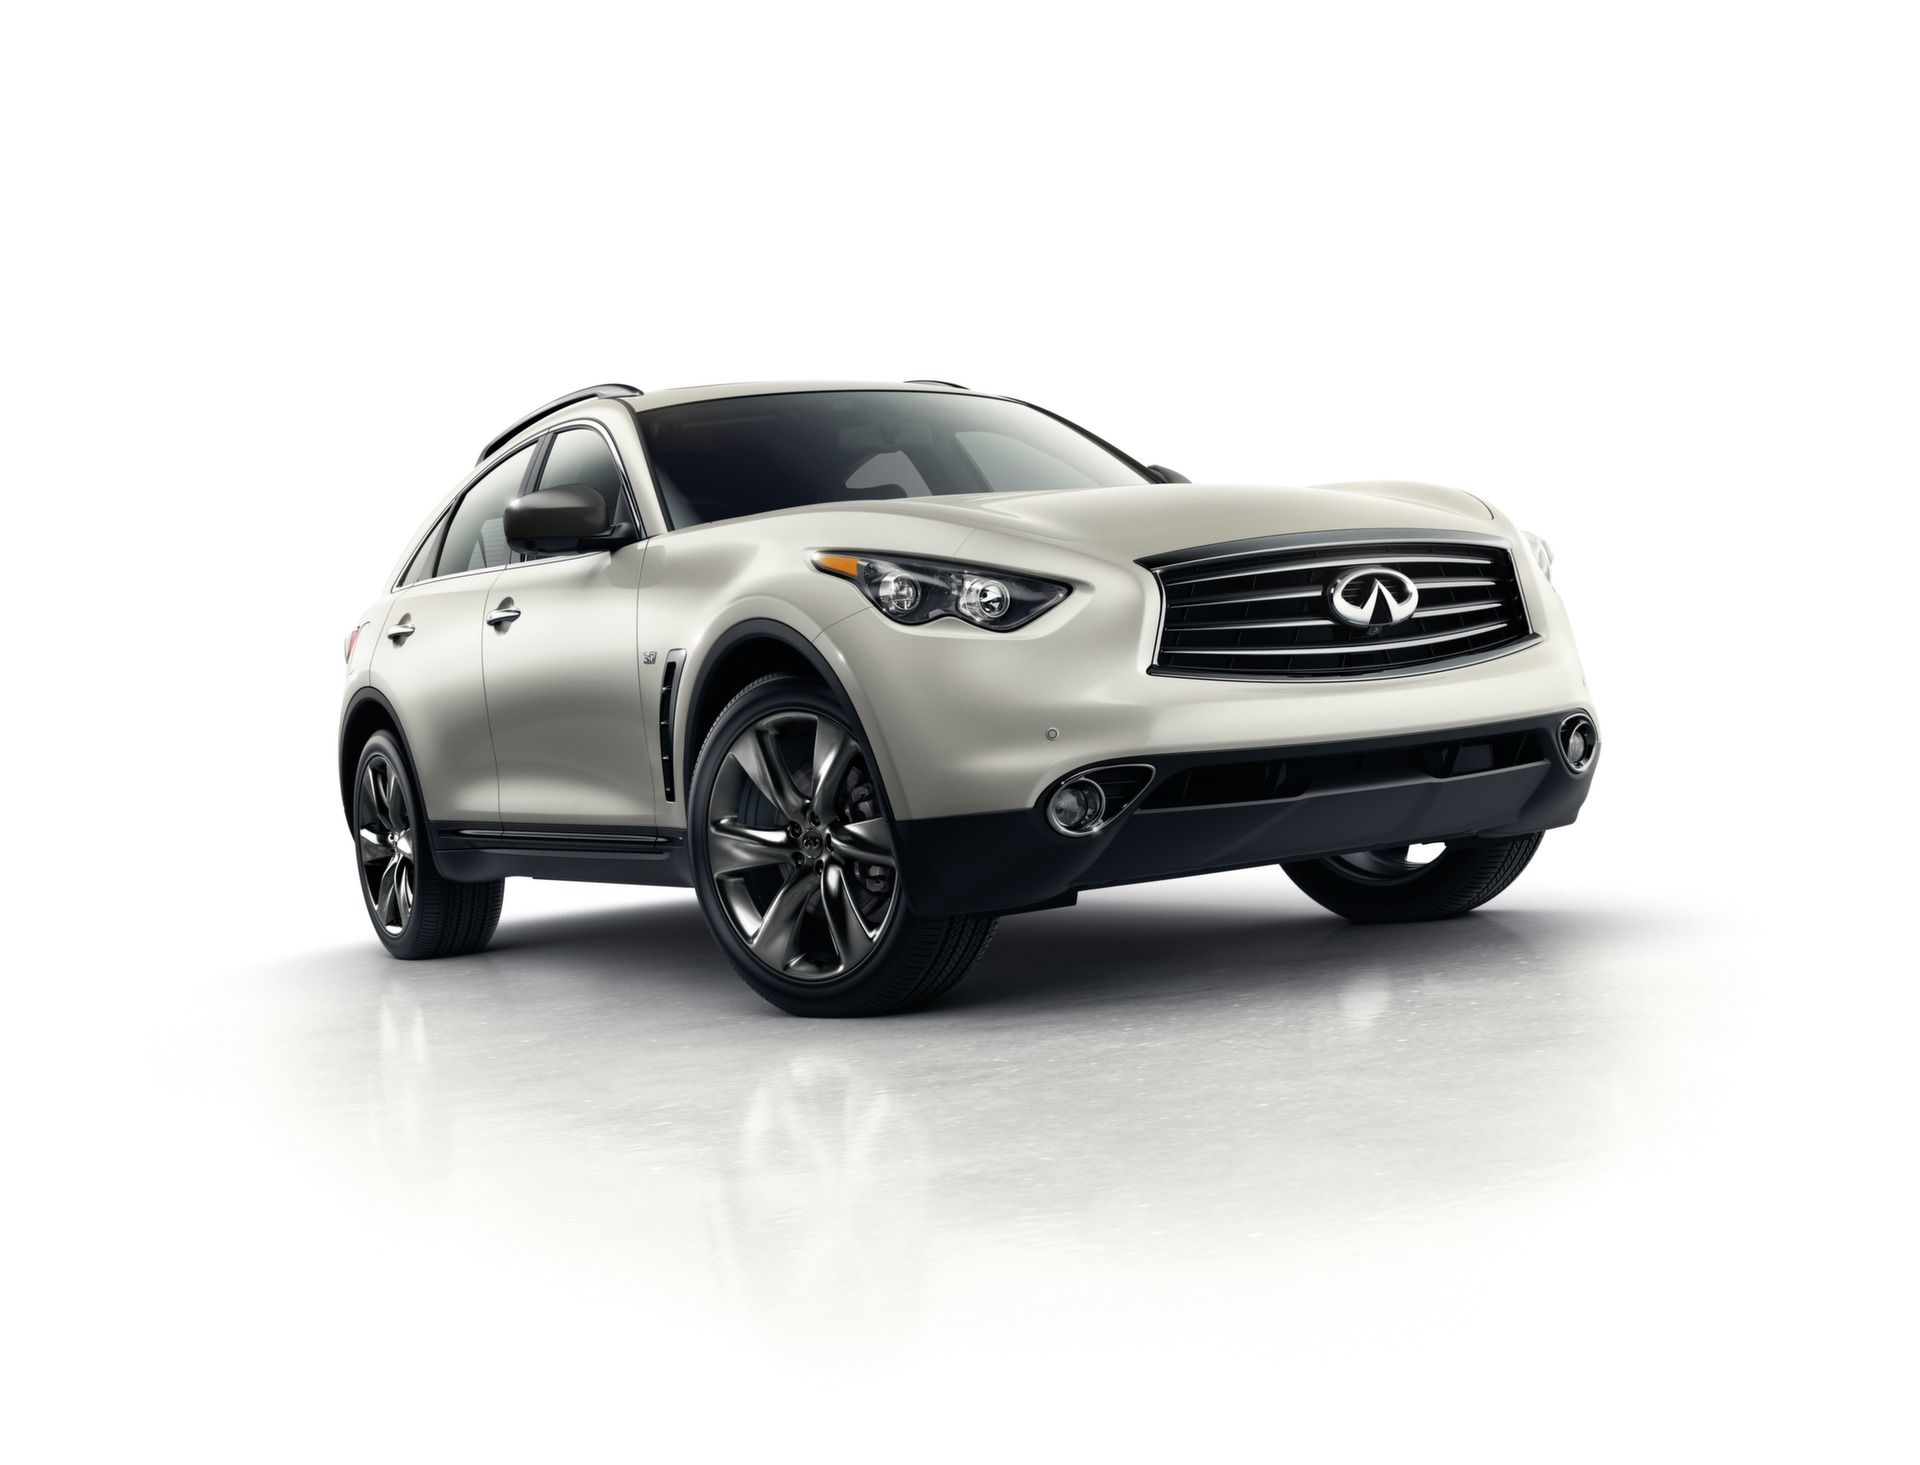 2016 infiniti qx70 styling review the car connection. Black Bedroom Furniture Sets. Home Design Ideas